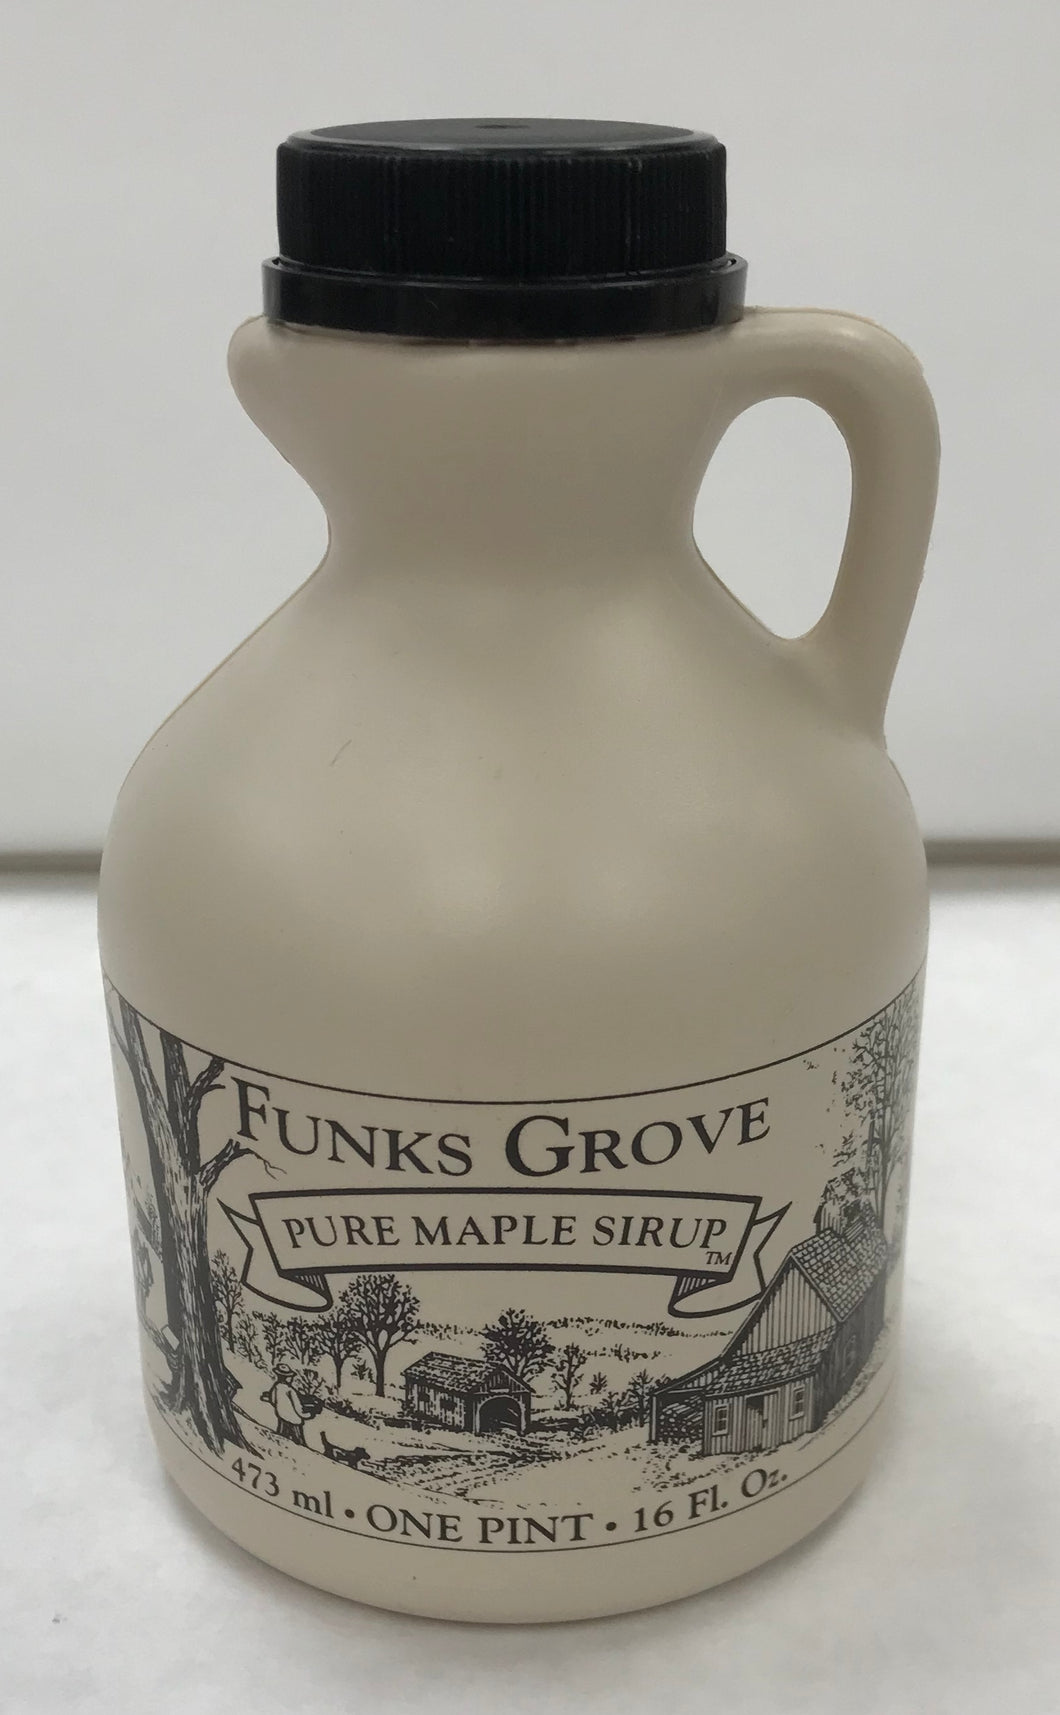 Funks Grove Maple Sirup - 1Pt